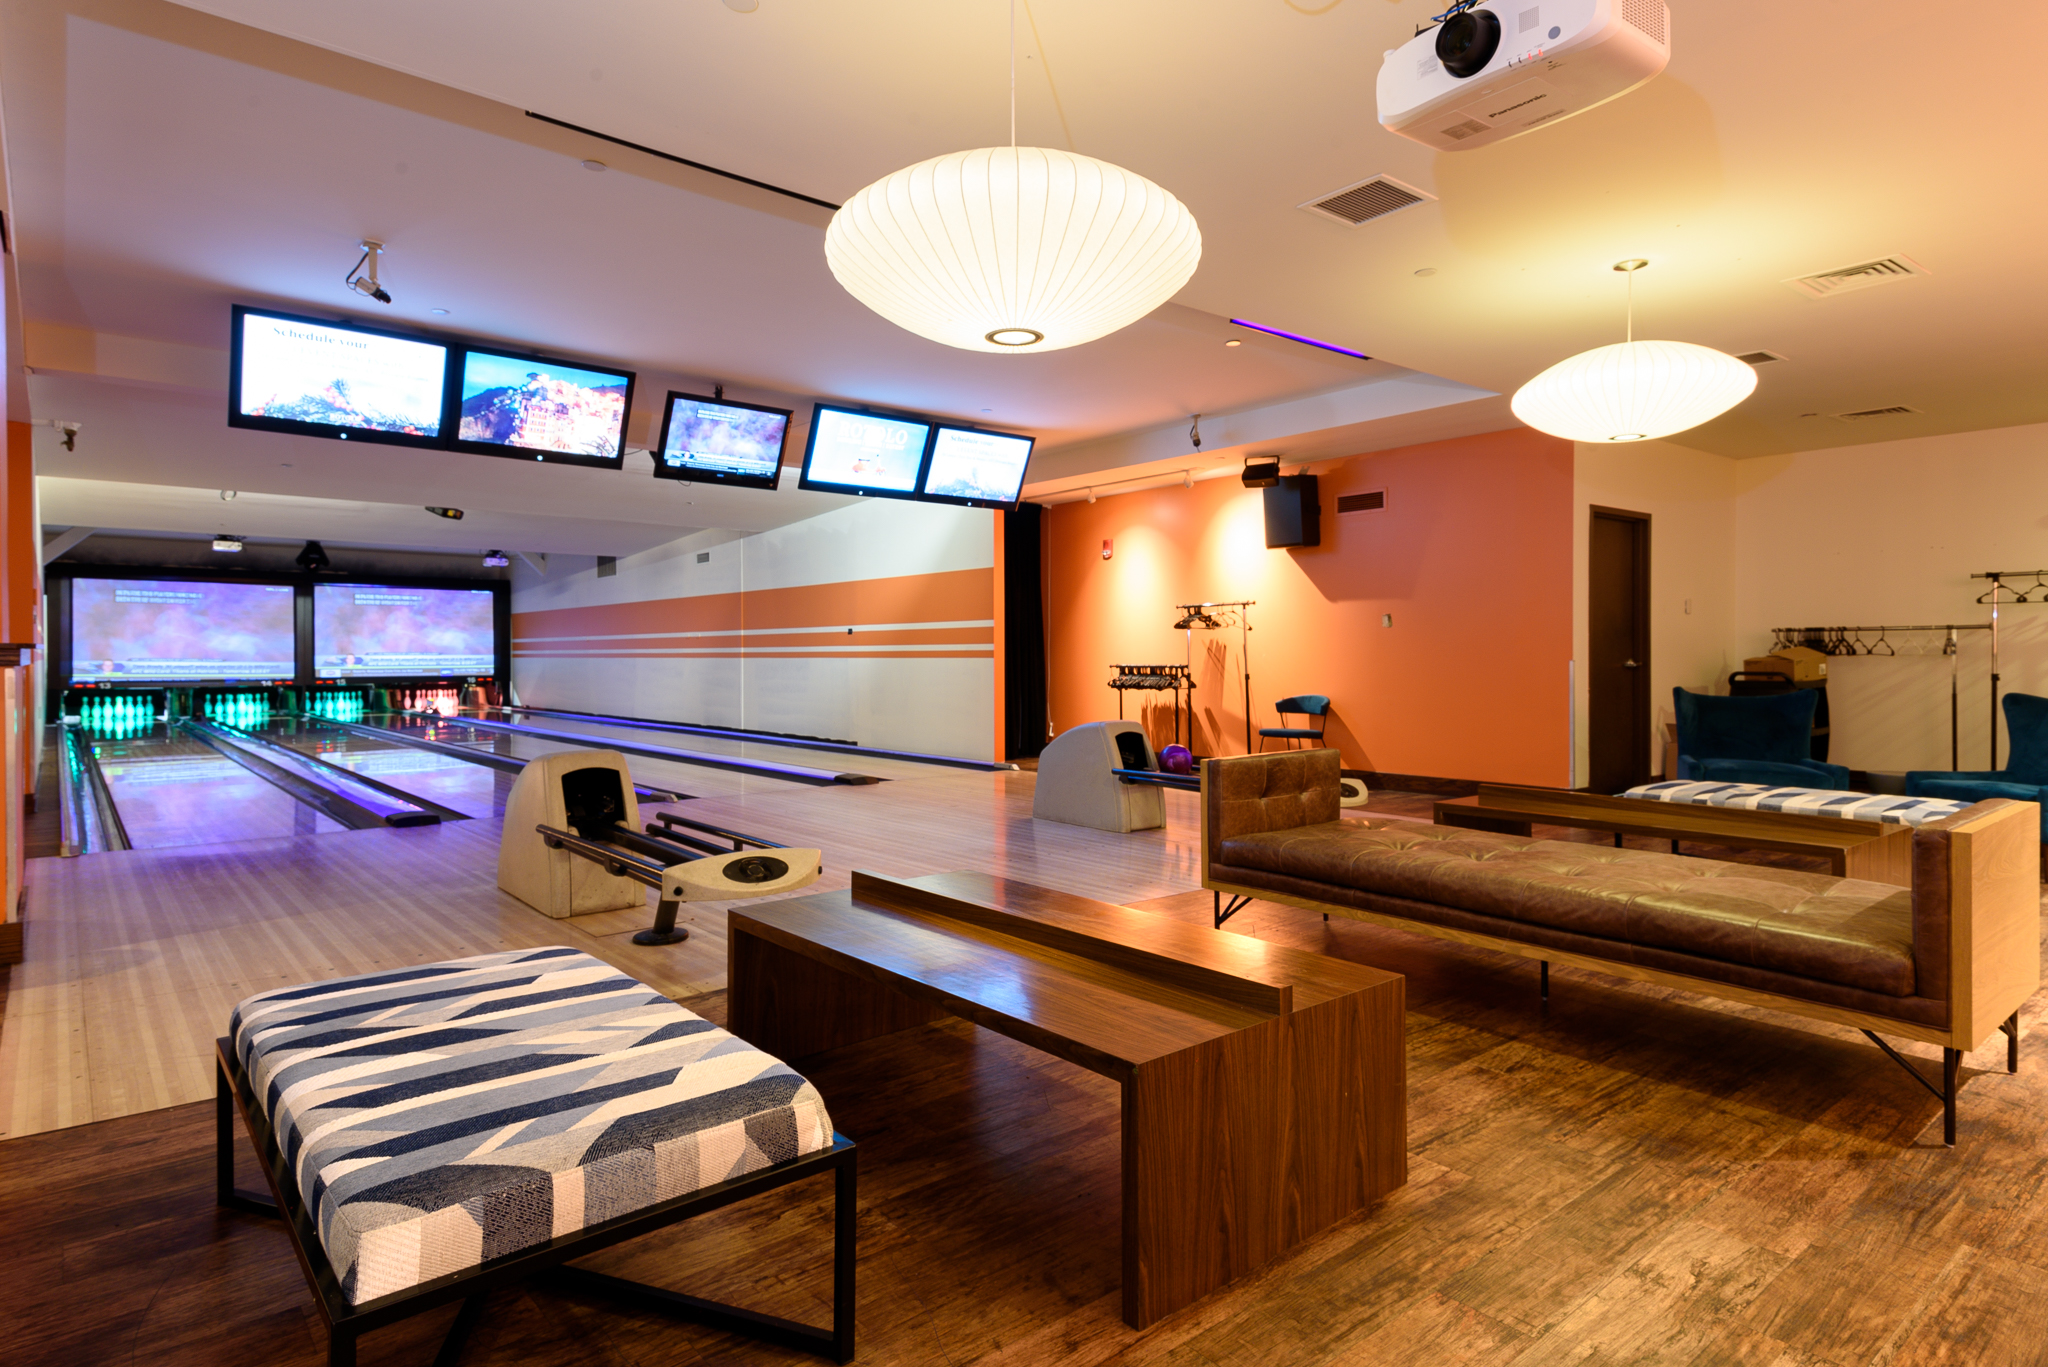 In the back is a VIP area that can be rented for any function. There, VIPs will have their own private bowling lanes as well as quick access to the full-service bar just outside the room. / Image: Phil Armstrong, Cincinnati Refined // Published: 1.12.19